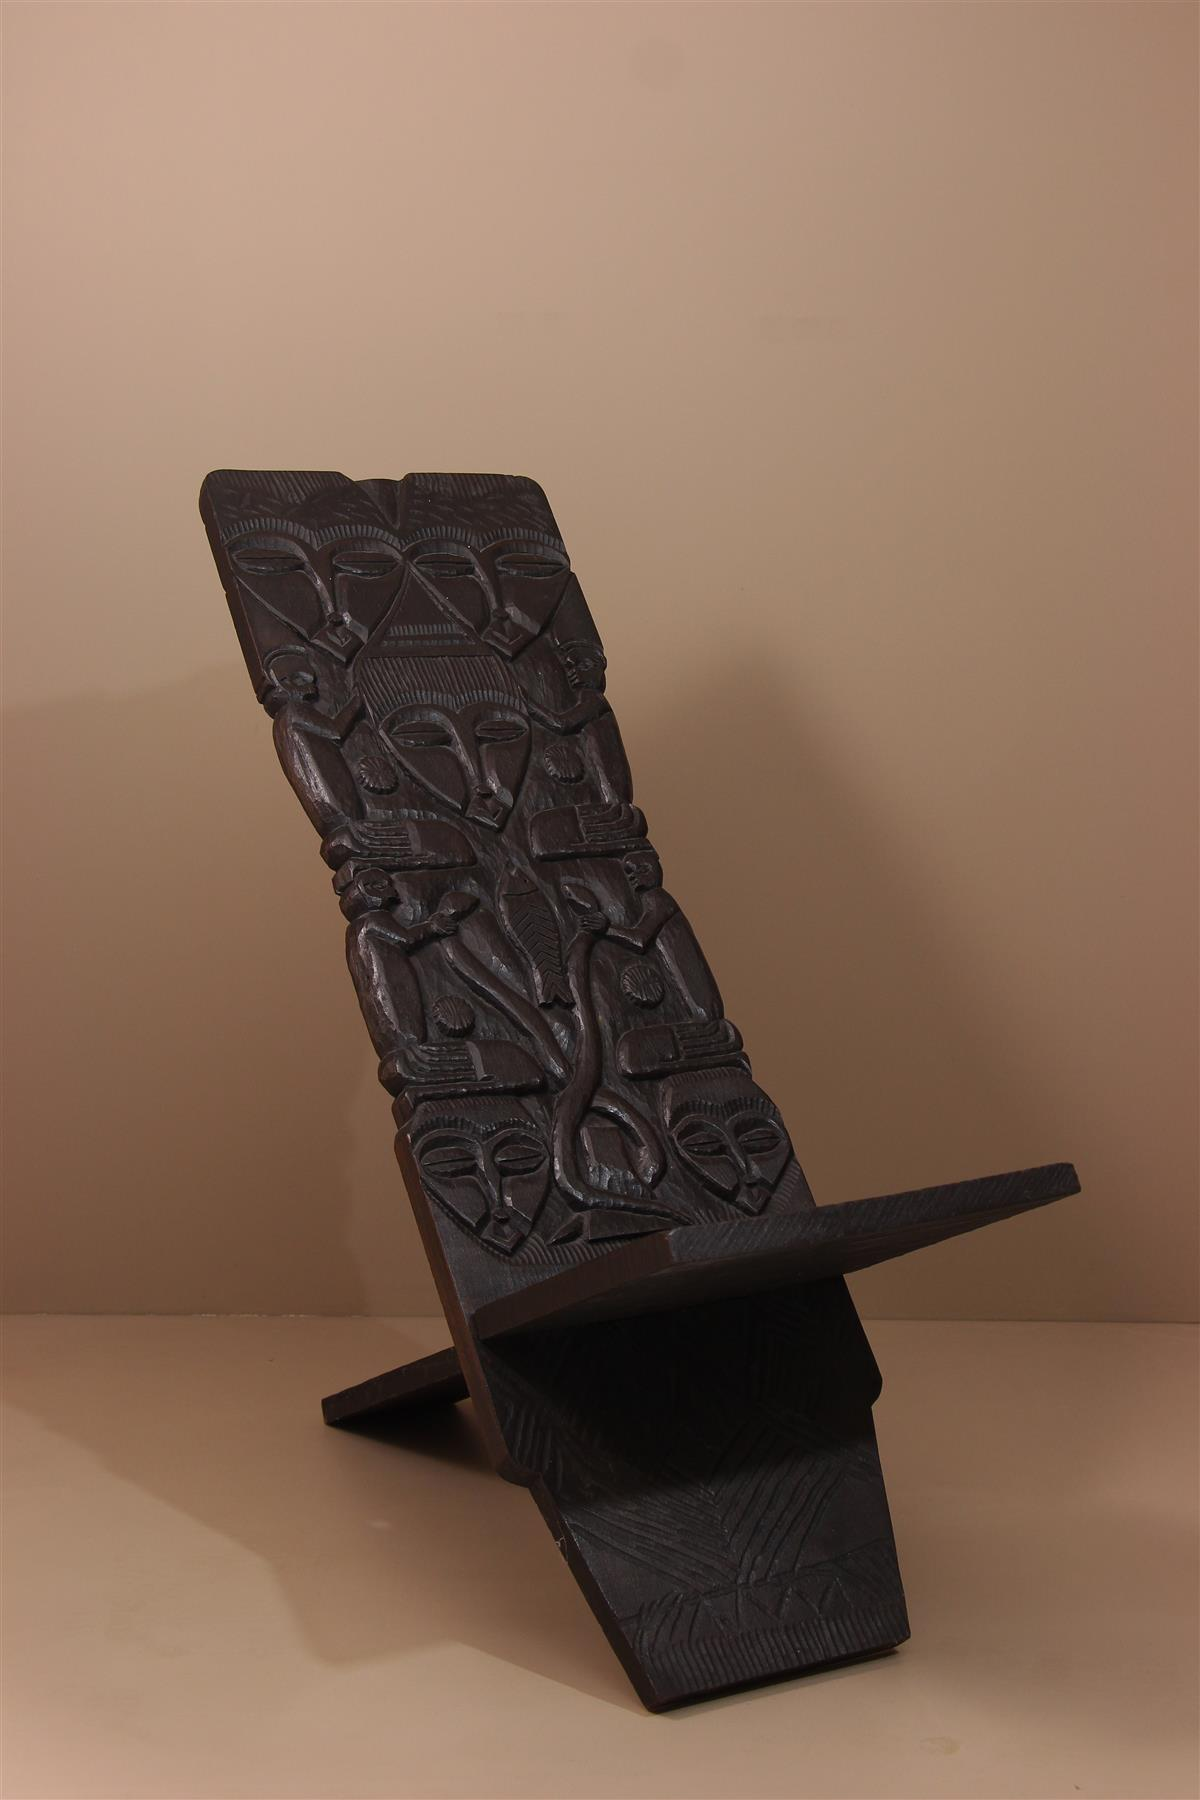 Chaise Kongo - Déco africaine - Art africain traditionnel